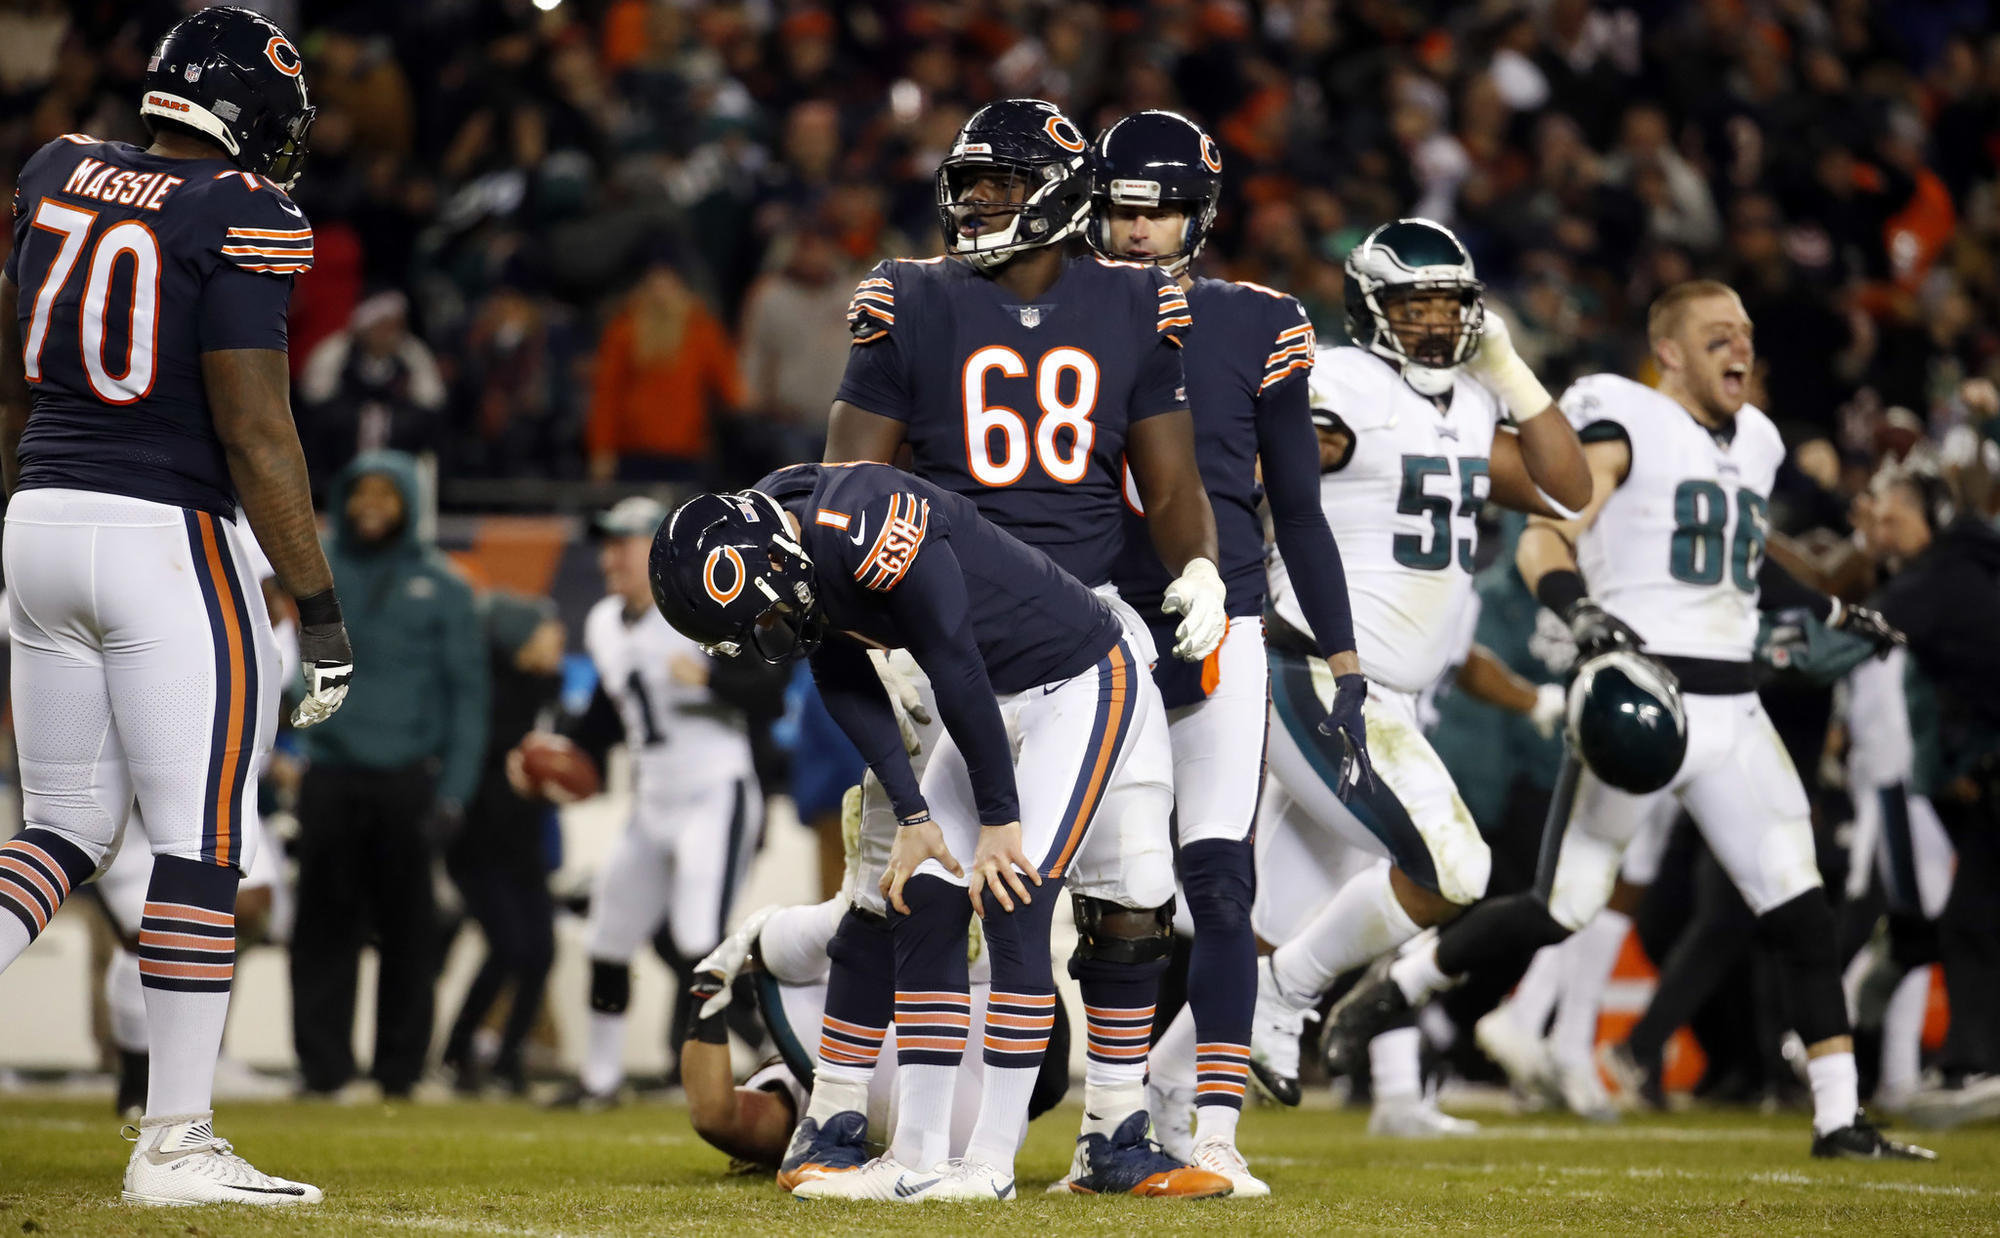 Sympathy for Cody Parkey  and the double doink